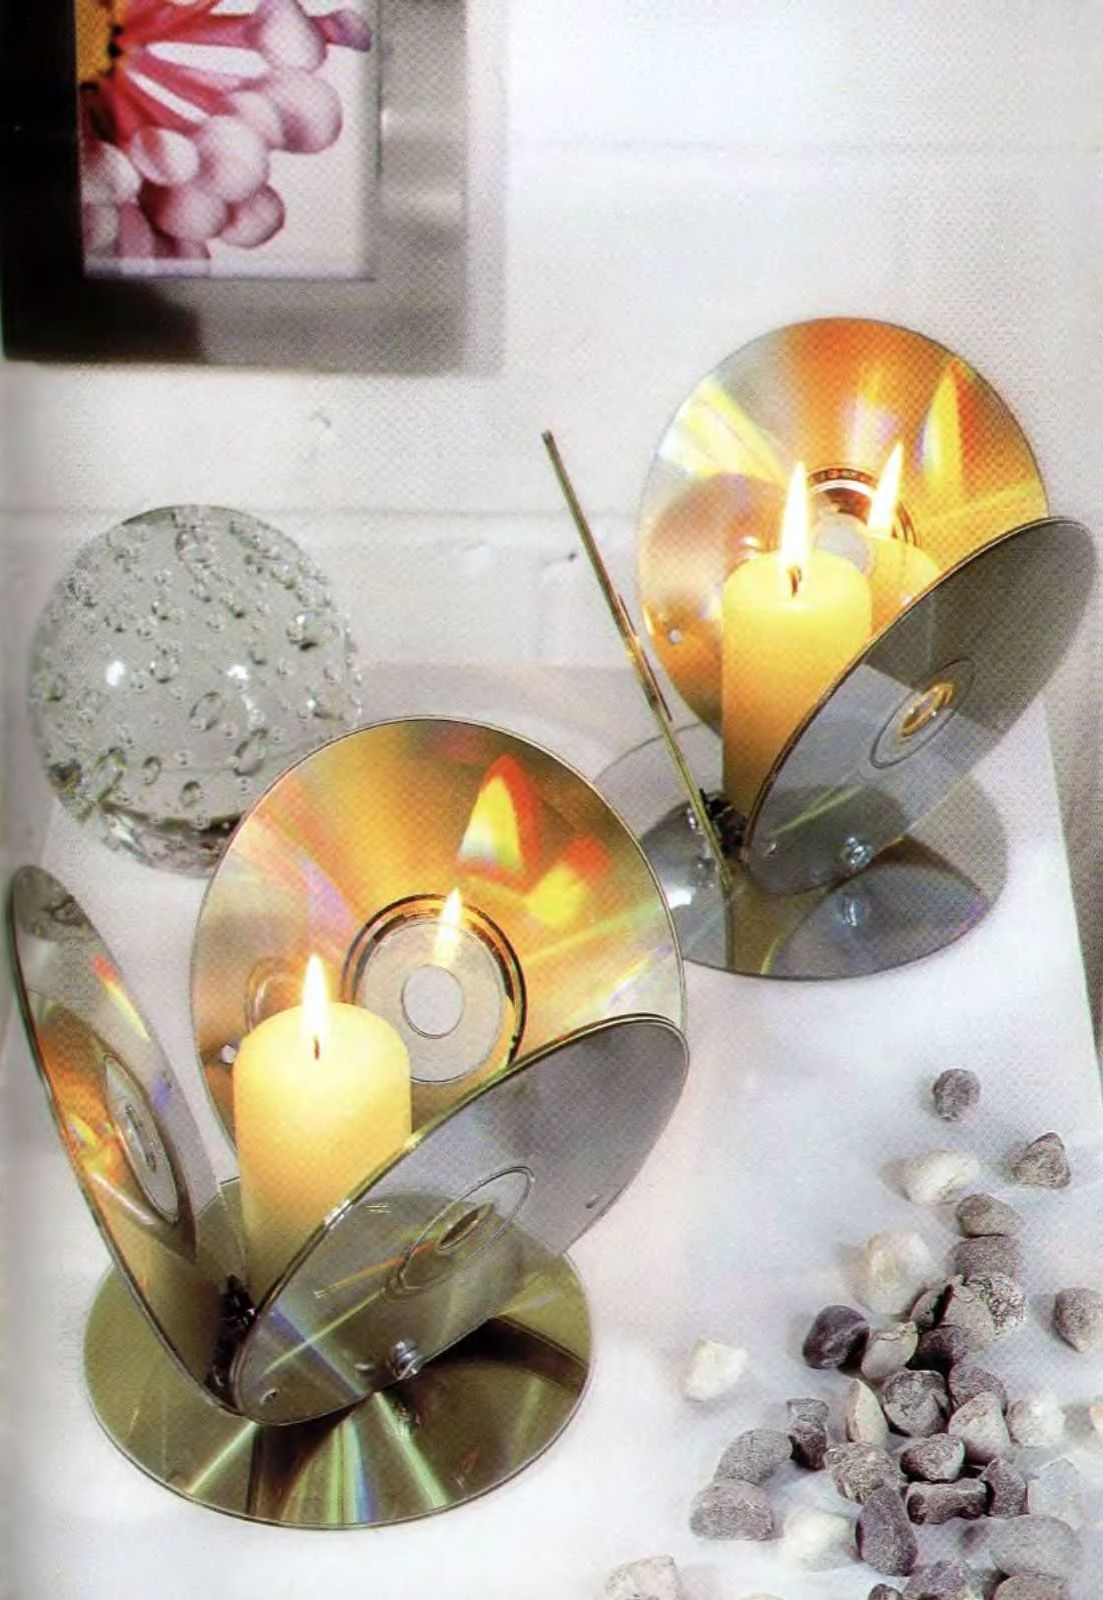 cds recycled crafts, recycled cd crafts work, recycled cd crafts for ...